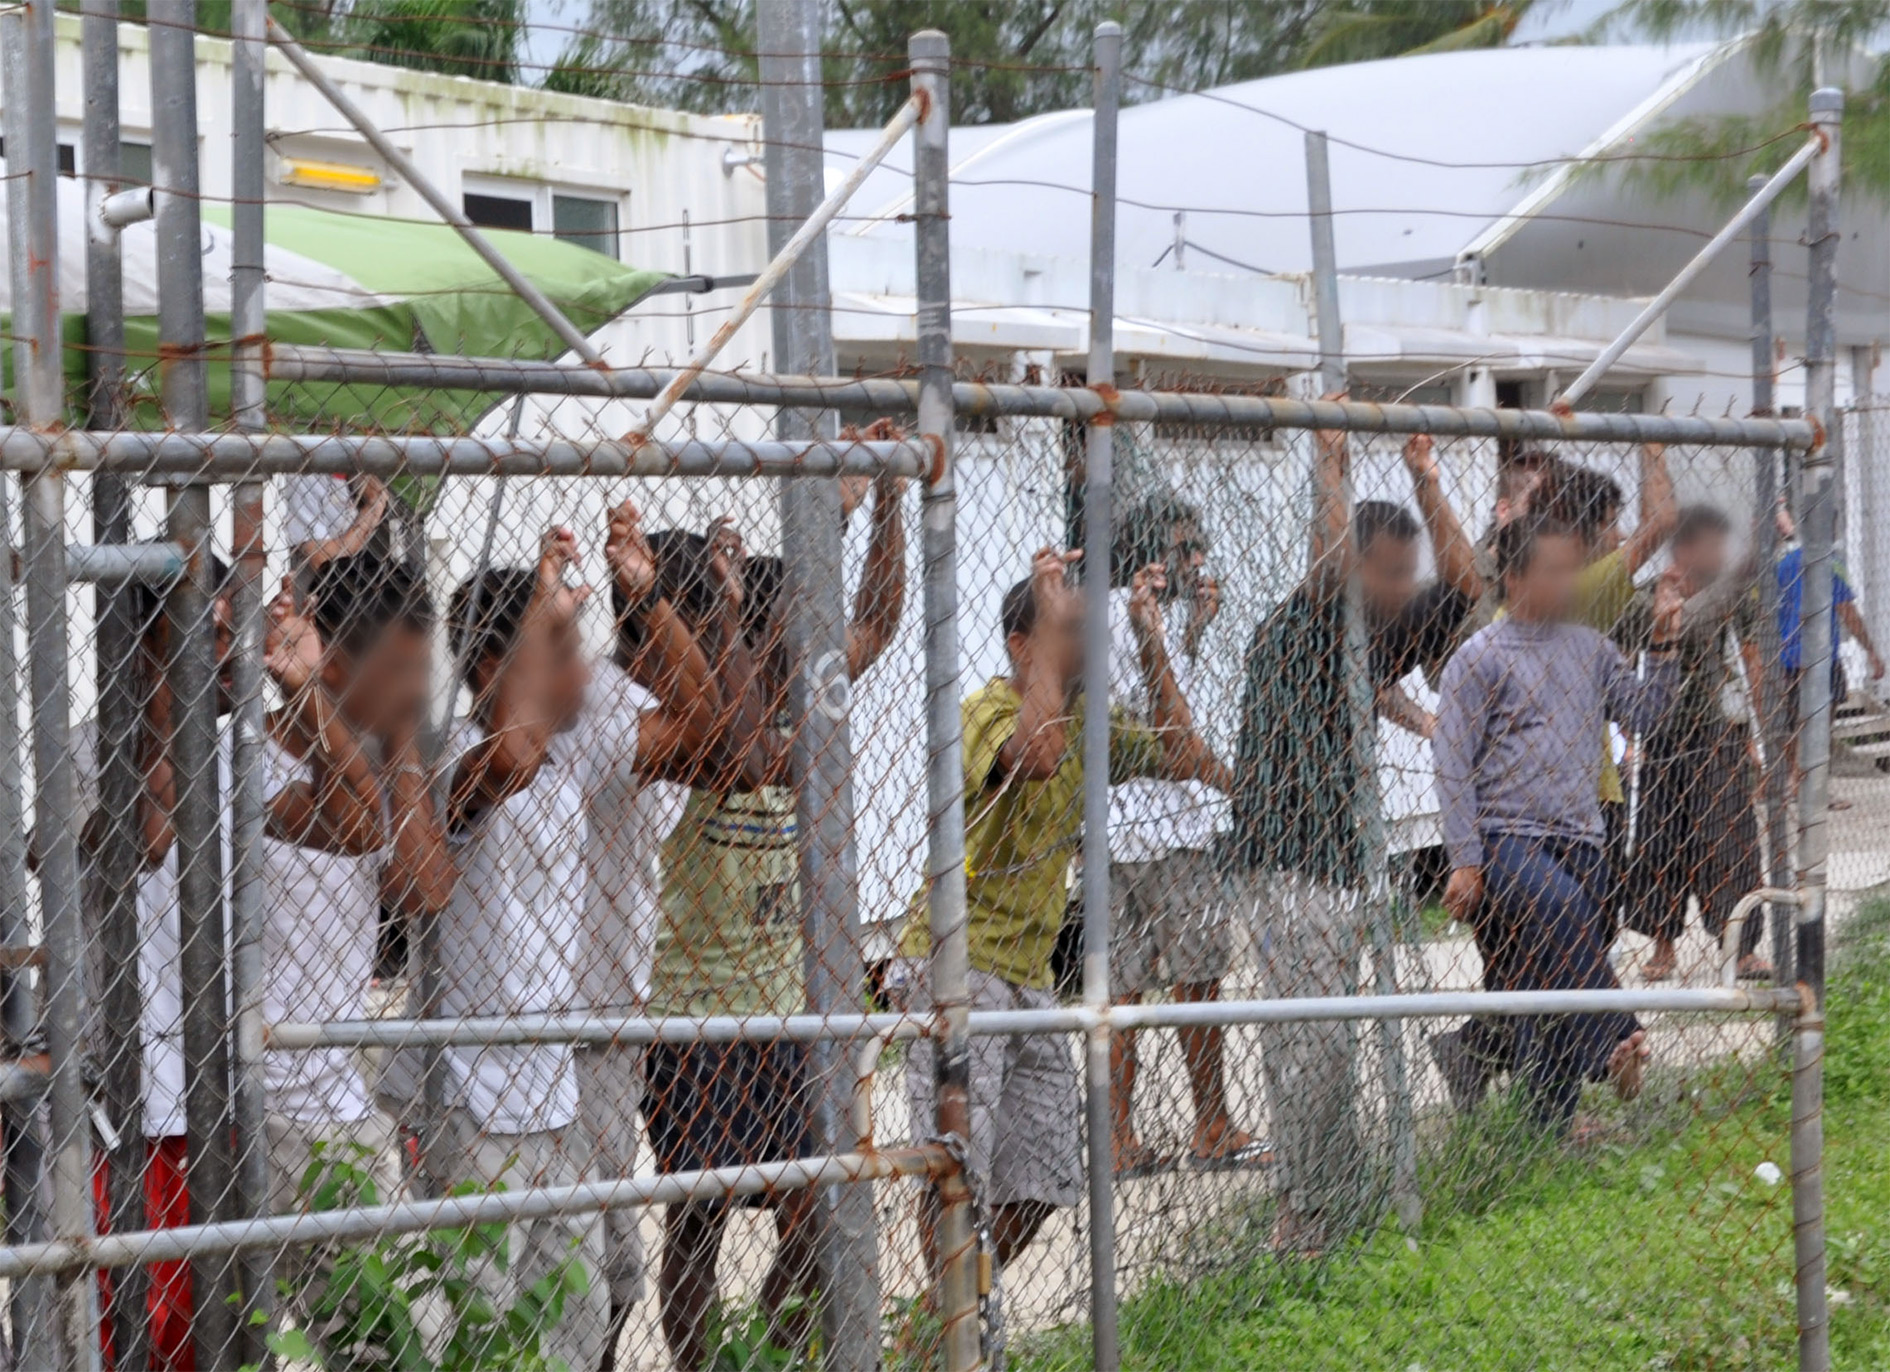 Asylum seekers look at the media from behind a fence at the Manus Island detention centre, Papua New Guinea in this picture taken 21 March 2014. This is image is supplied from source with faces digitally blurred.